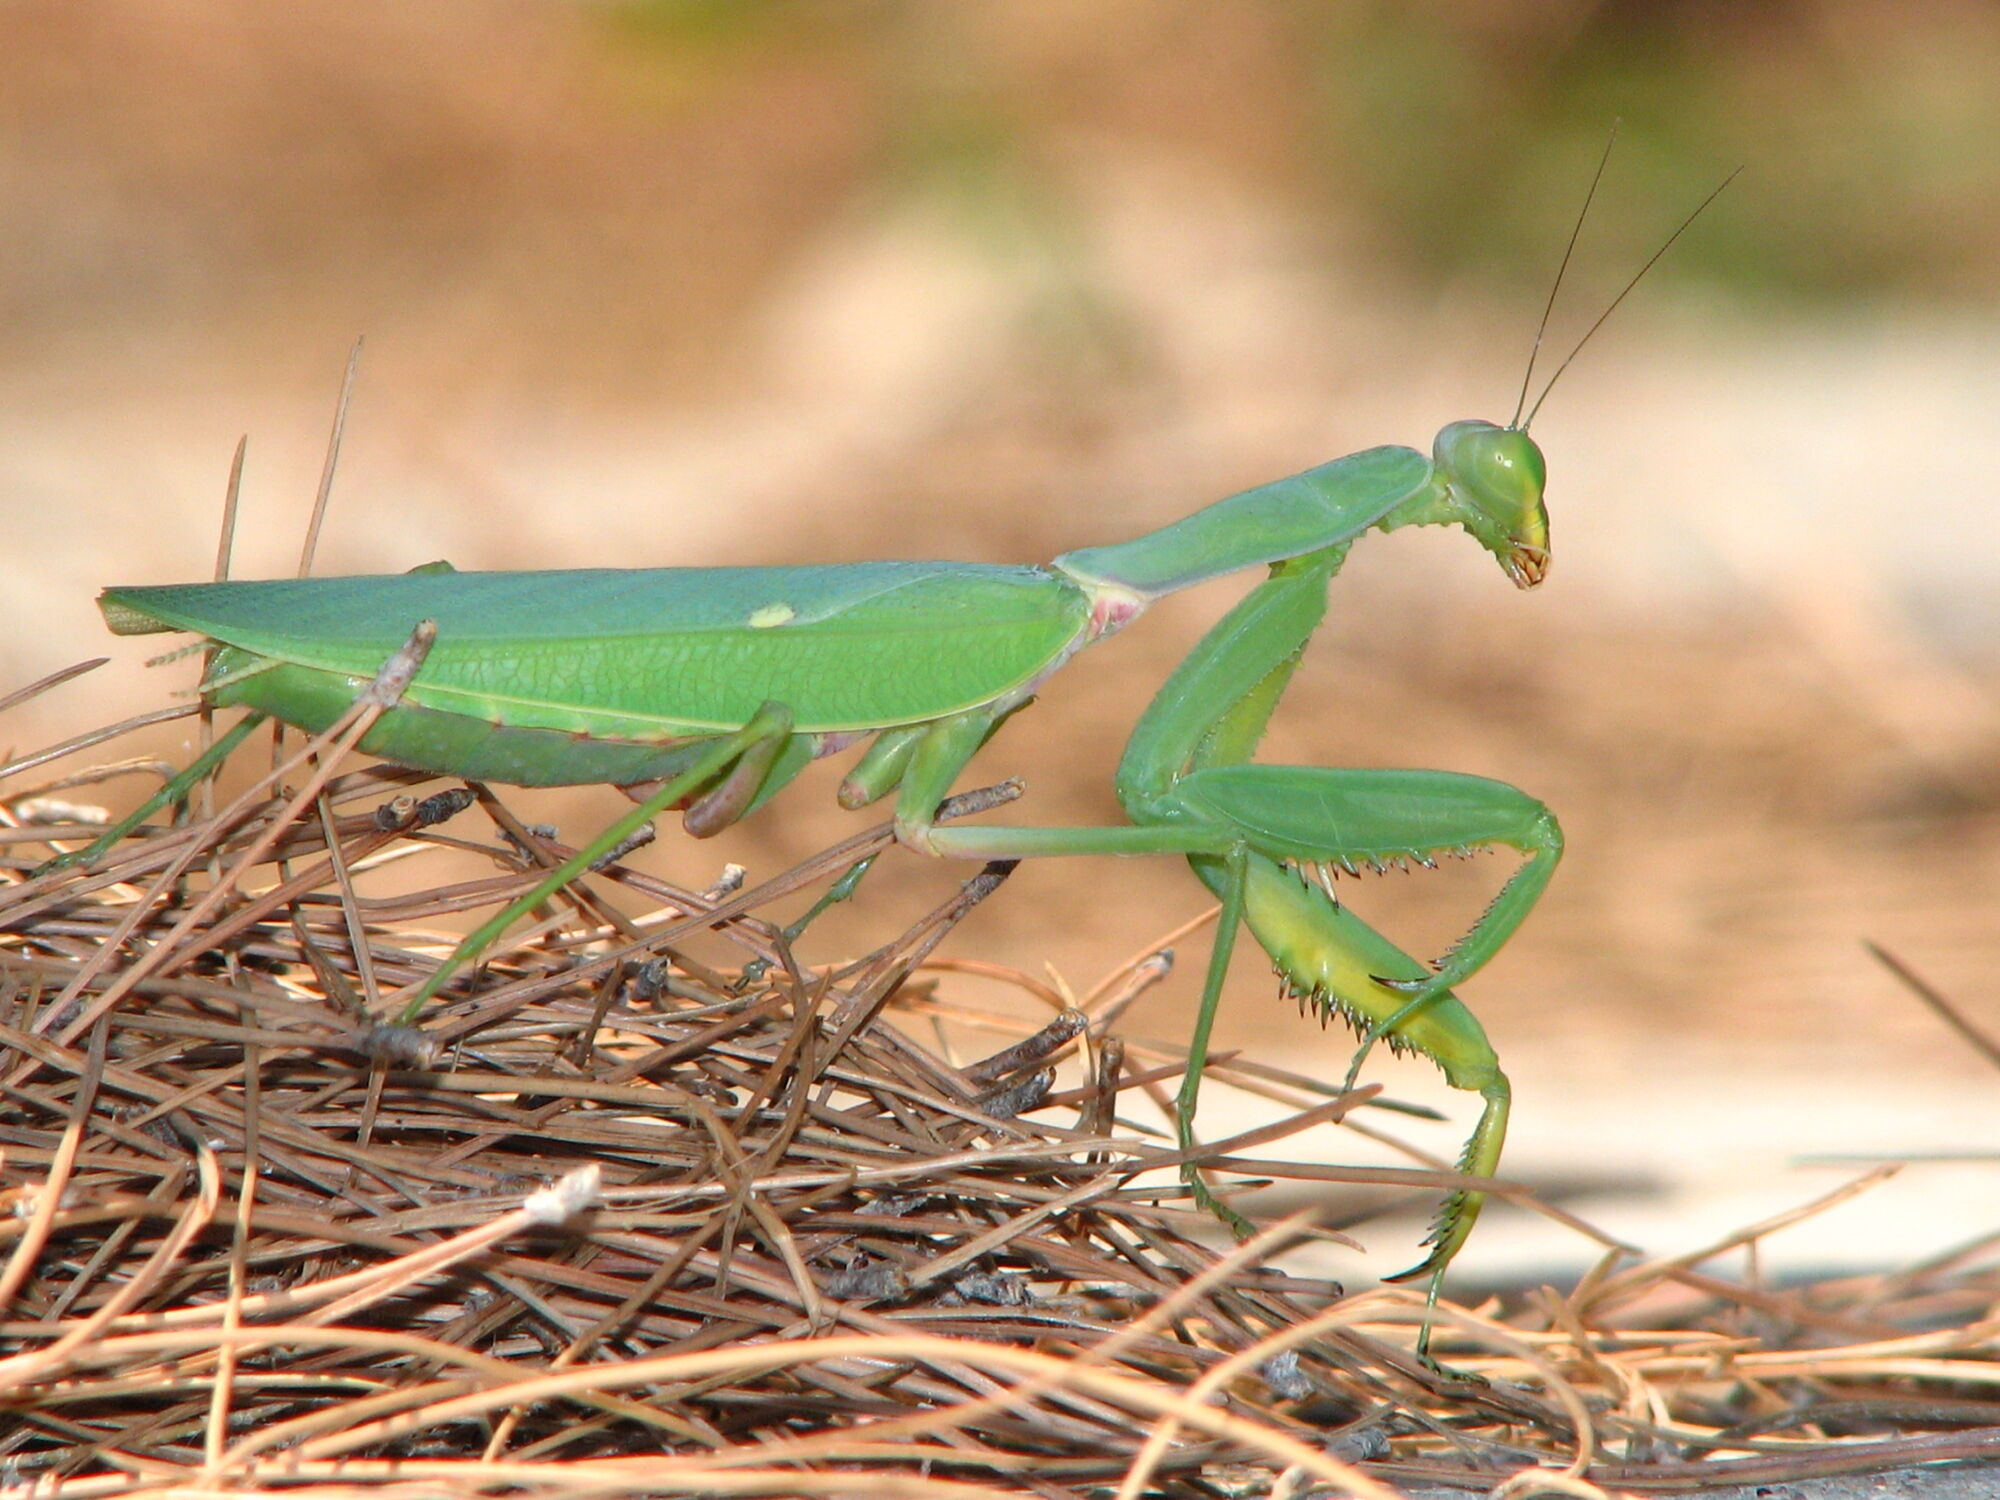 Praying Mantis | Creatures of the World Wikia | FANDOM powered by Wikia